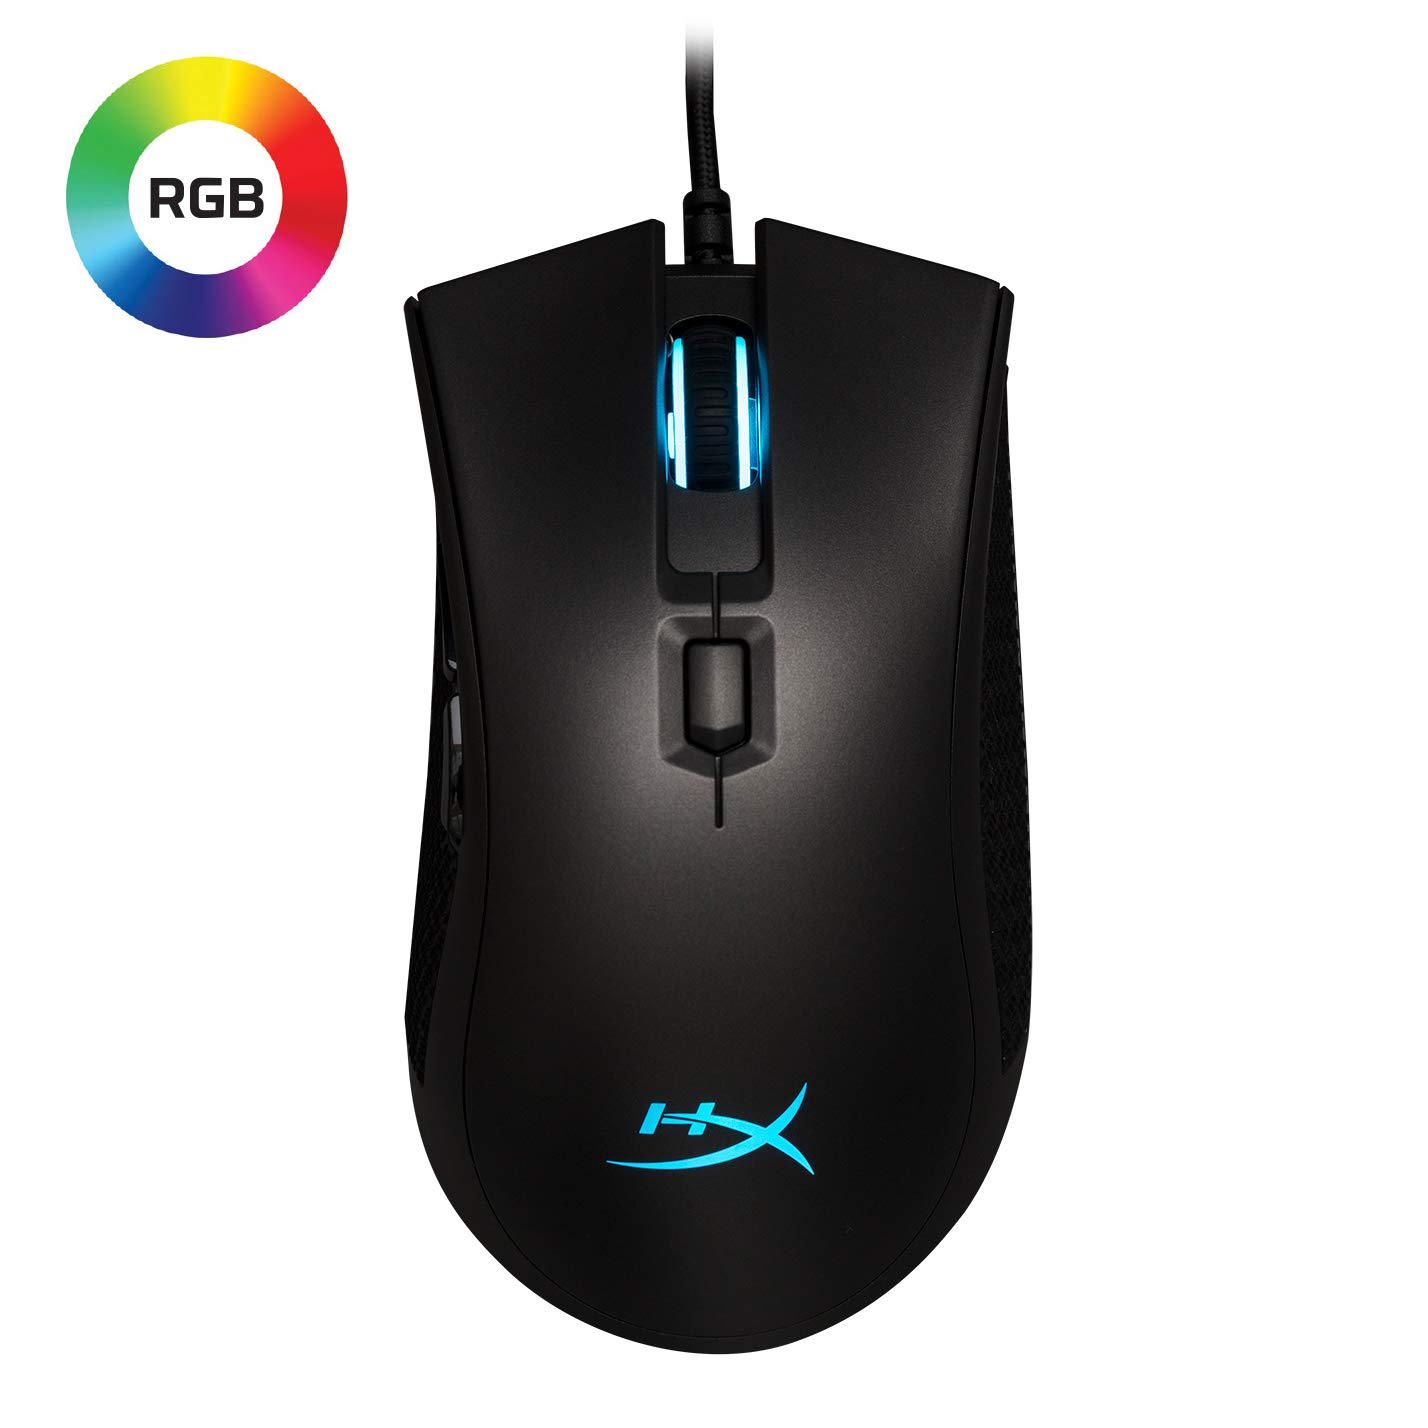 Mouse Gamer : HyperX Pulsefire FPS Pro Software Controlled R